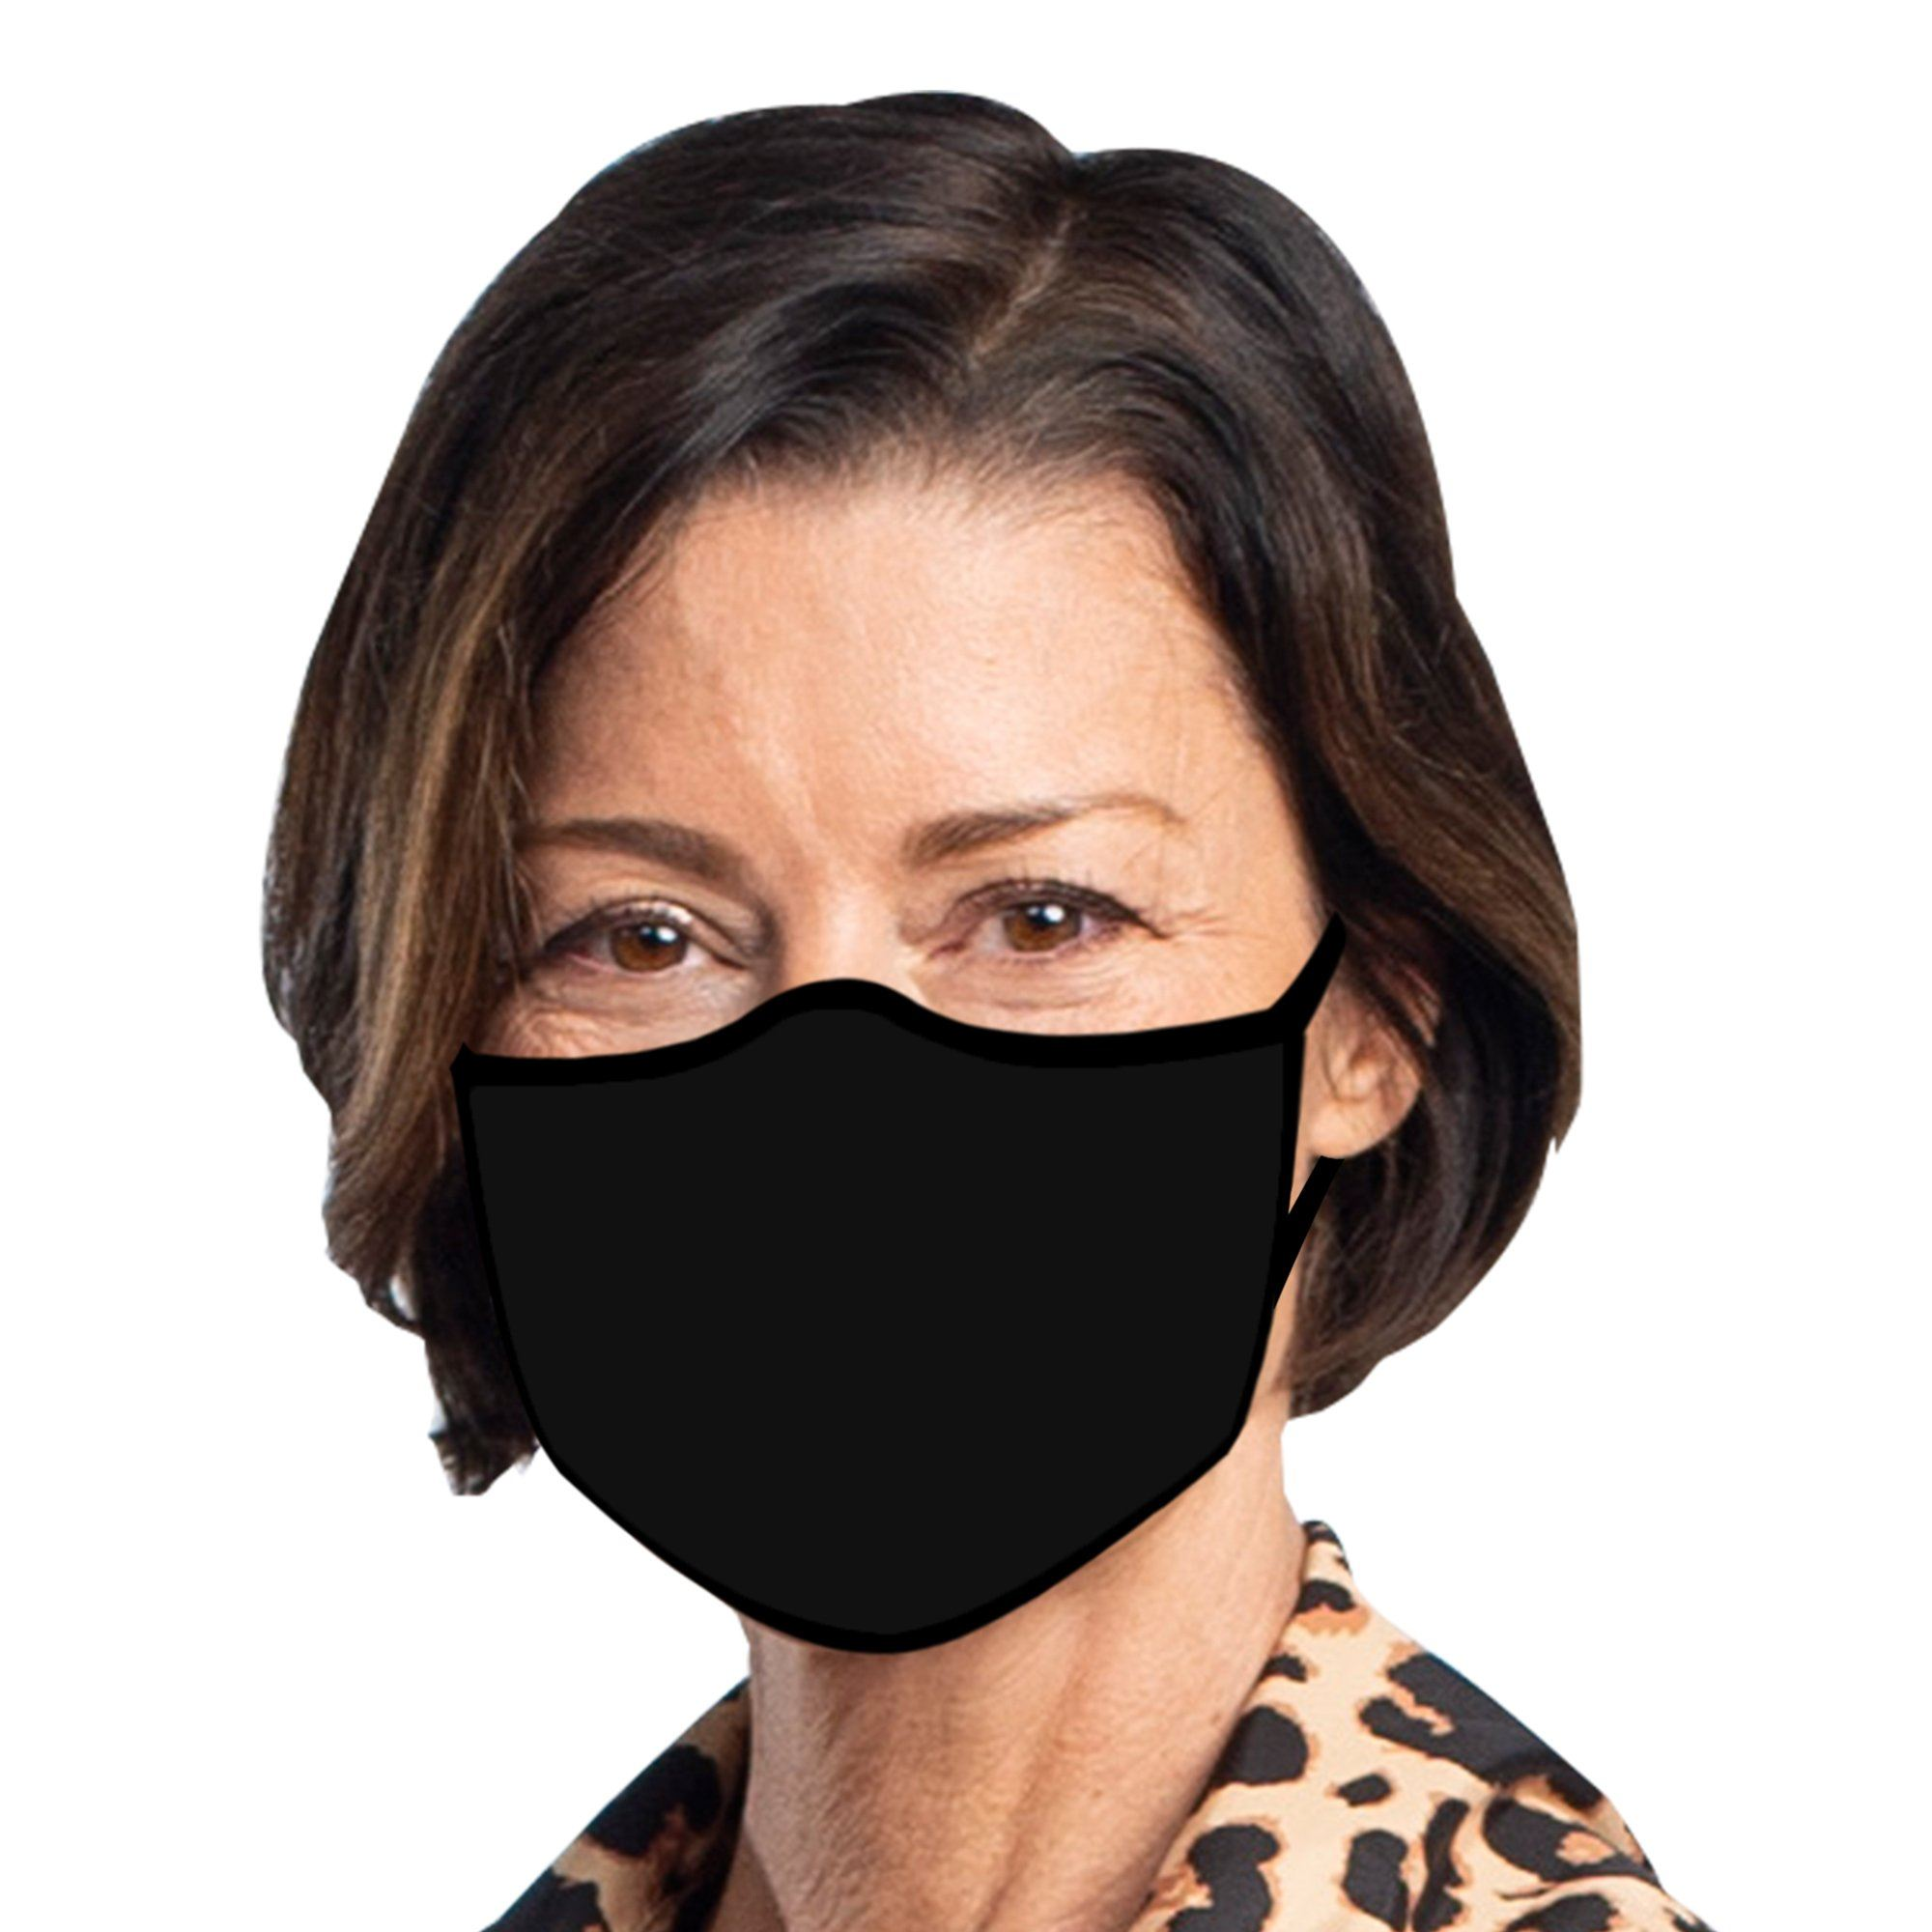 Woman wearing a Basic Black Reusable Fabric Face Mask.